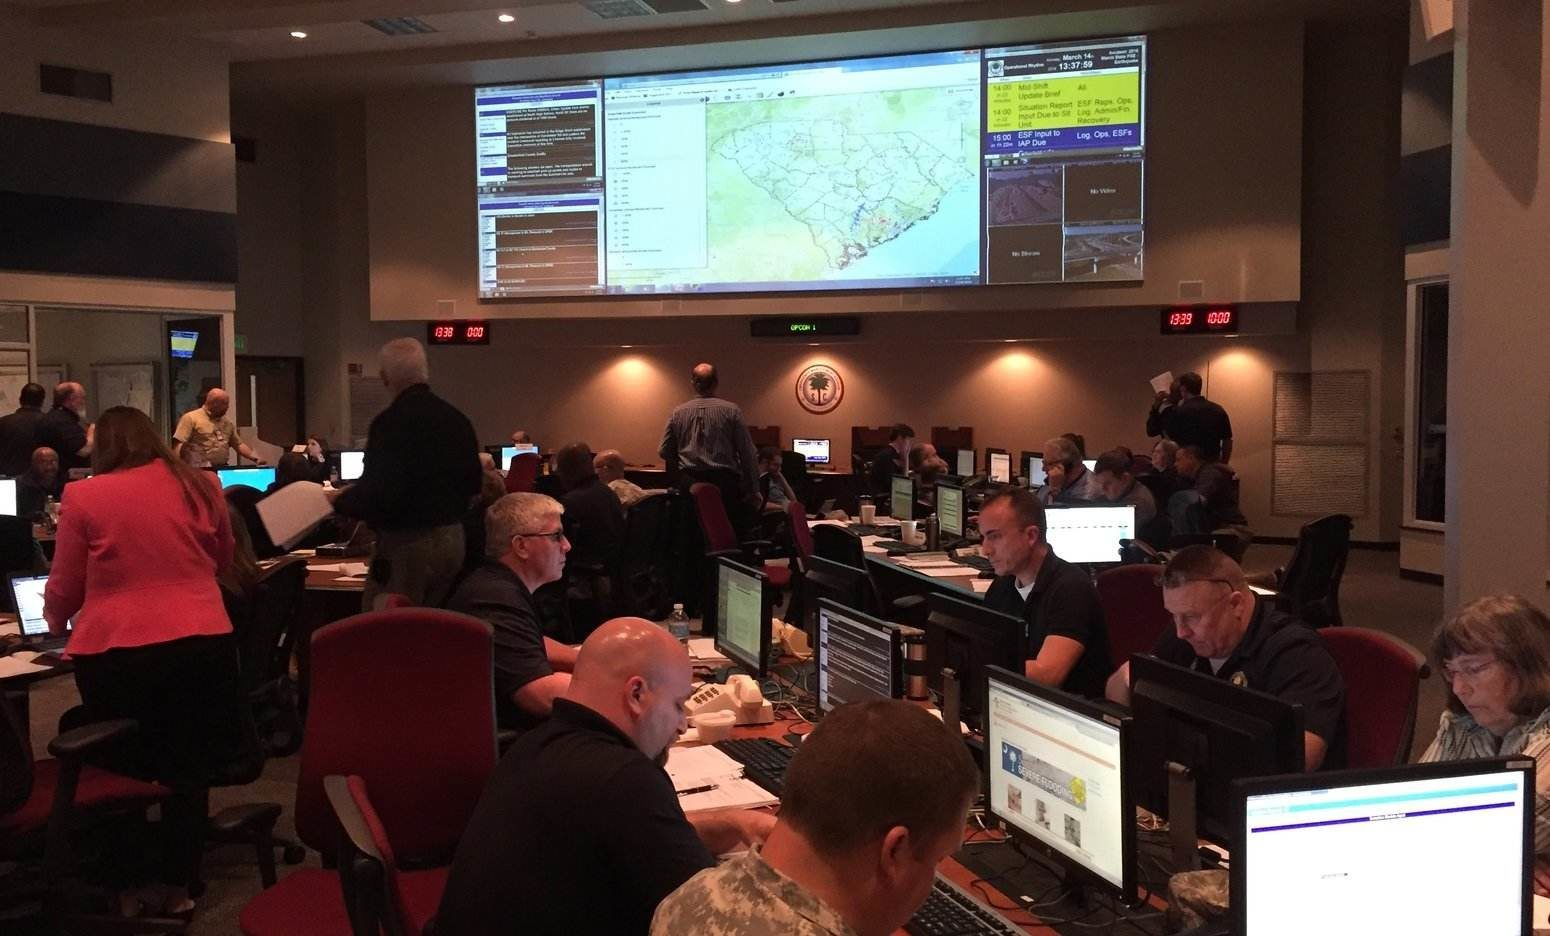 rsz_disaster_drill_151214